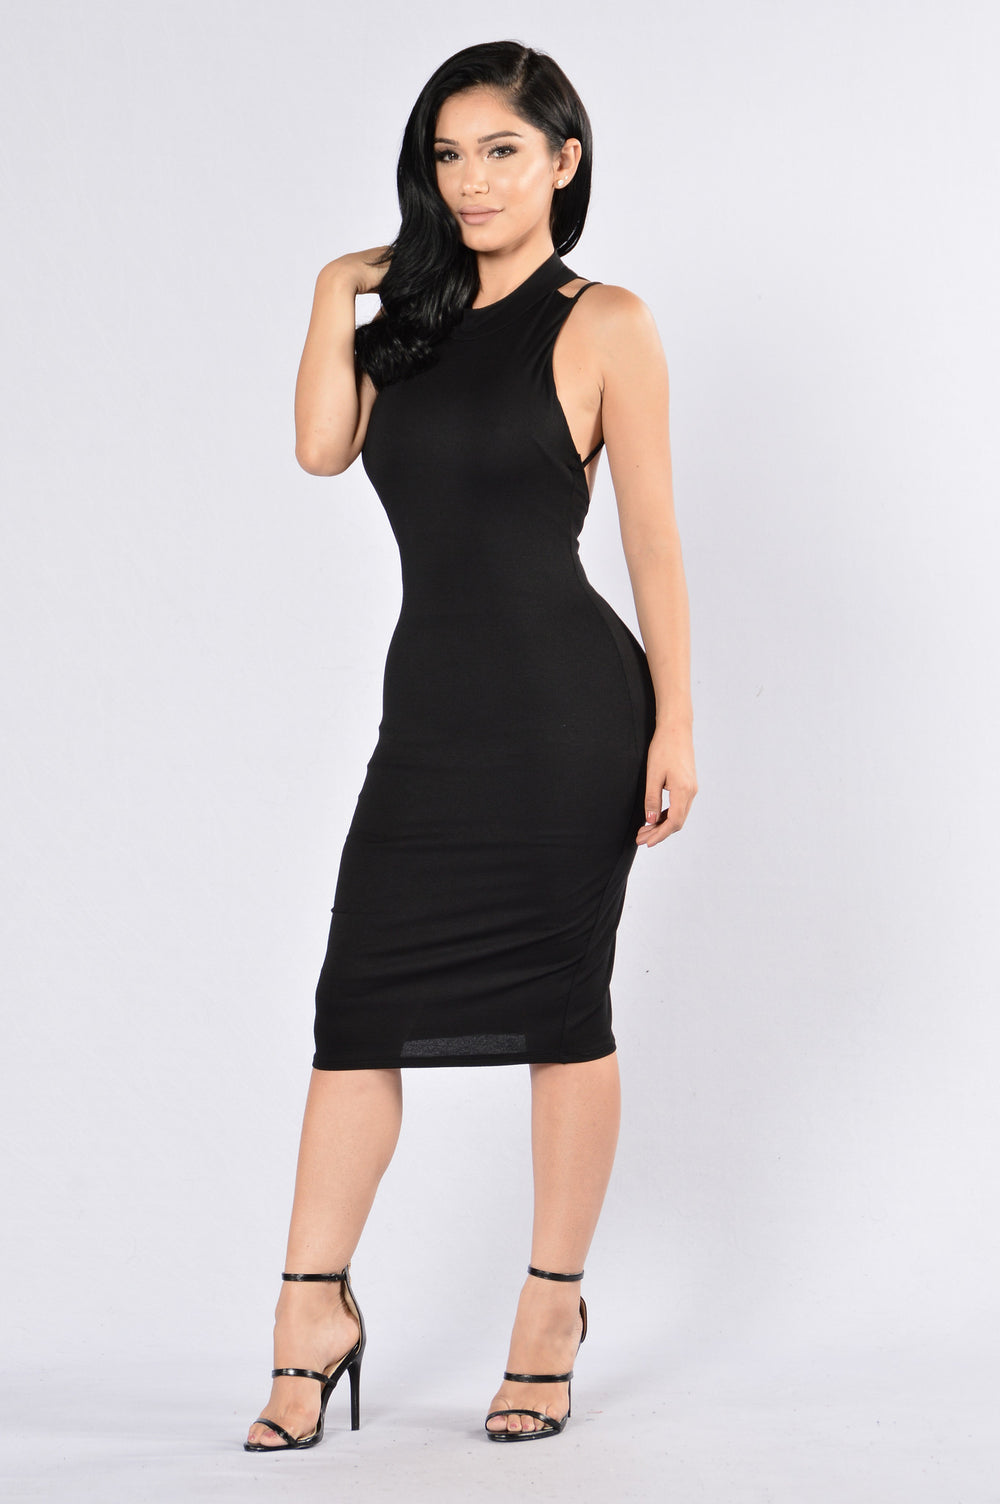 Ask Me Out Dress - Black